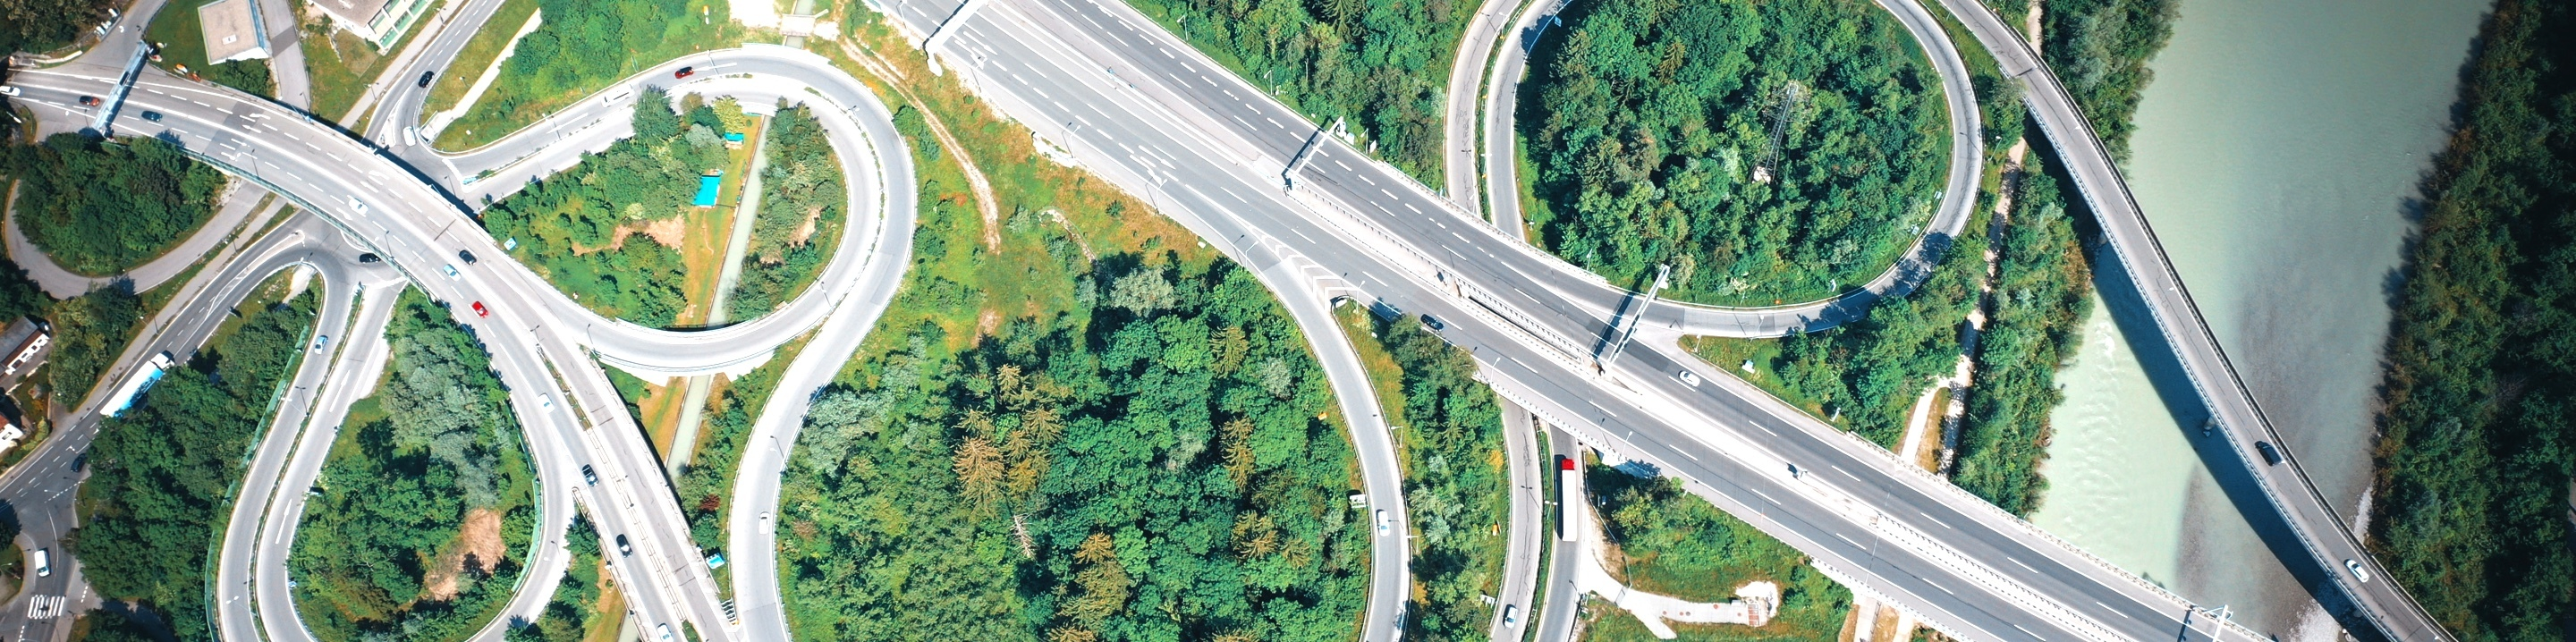 Bird's-eye view of a highway system